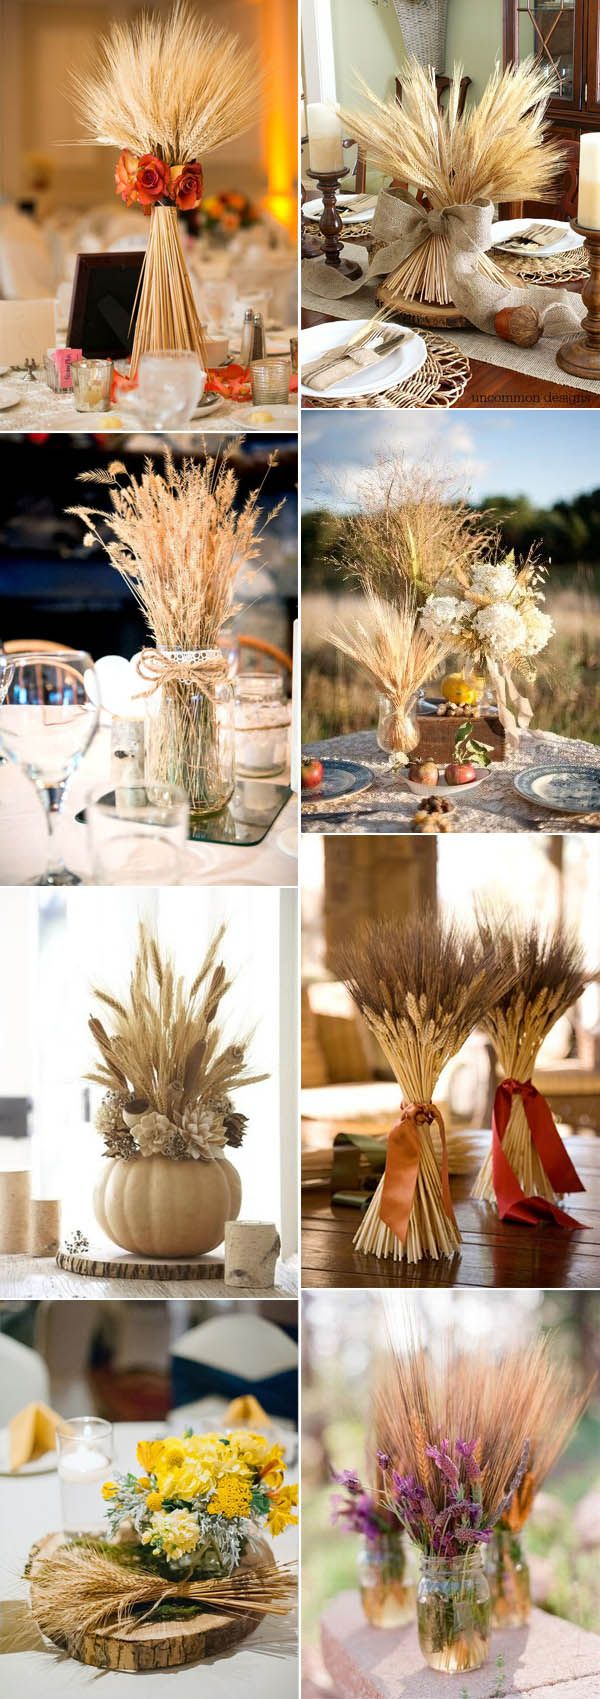 Best ideas about wheat centerpieces on pinterest